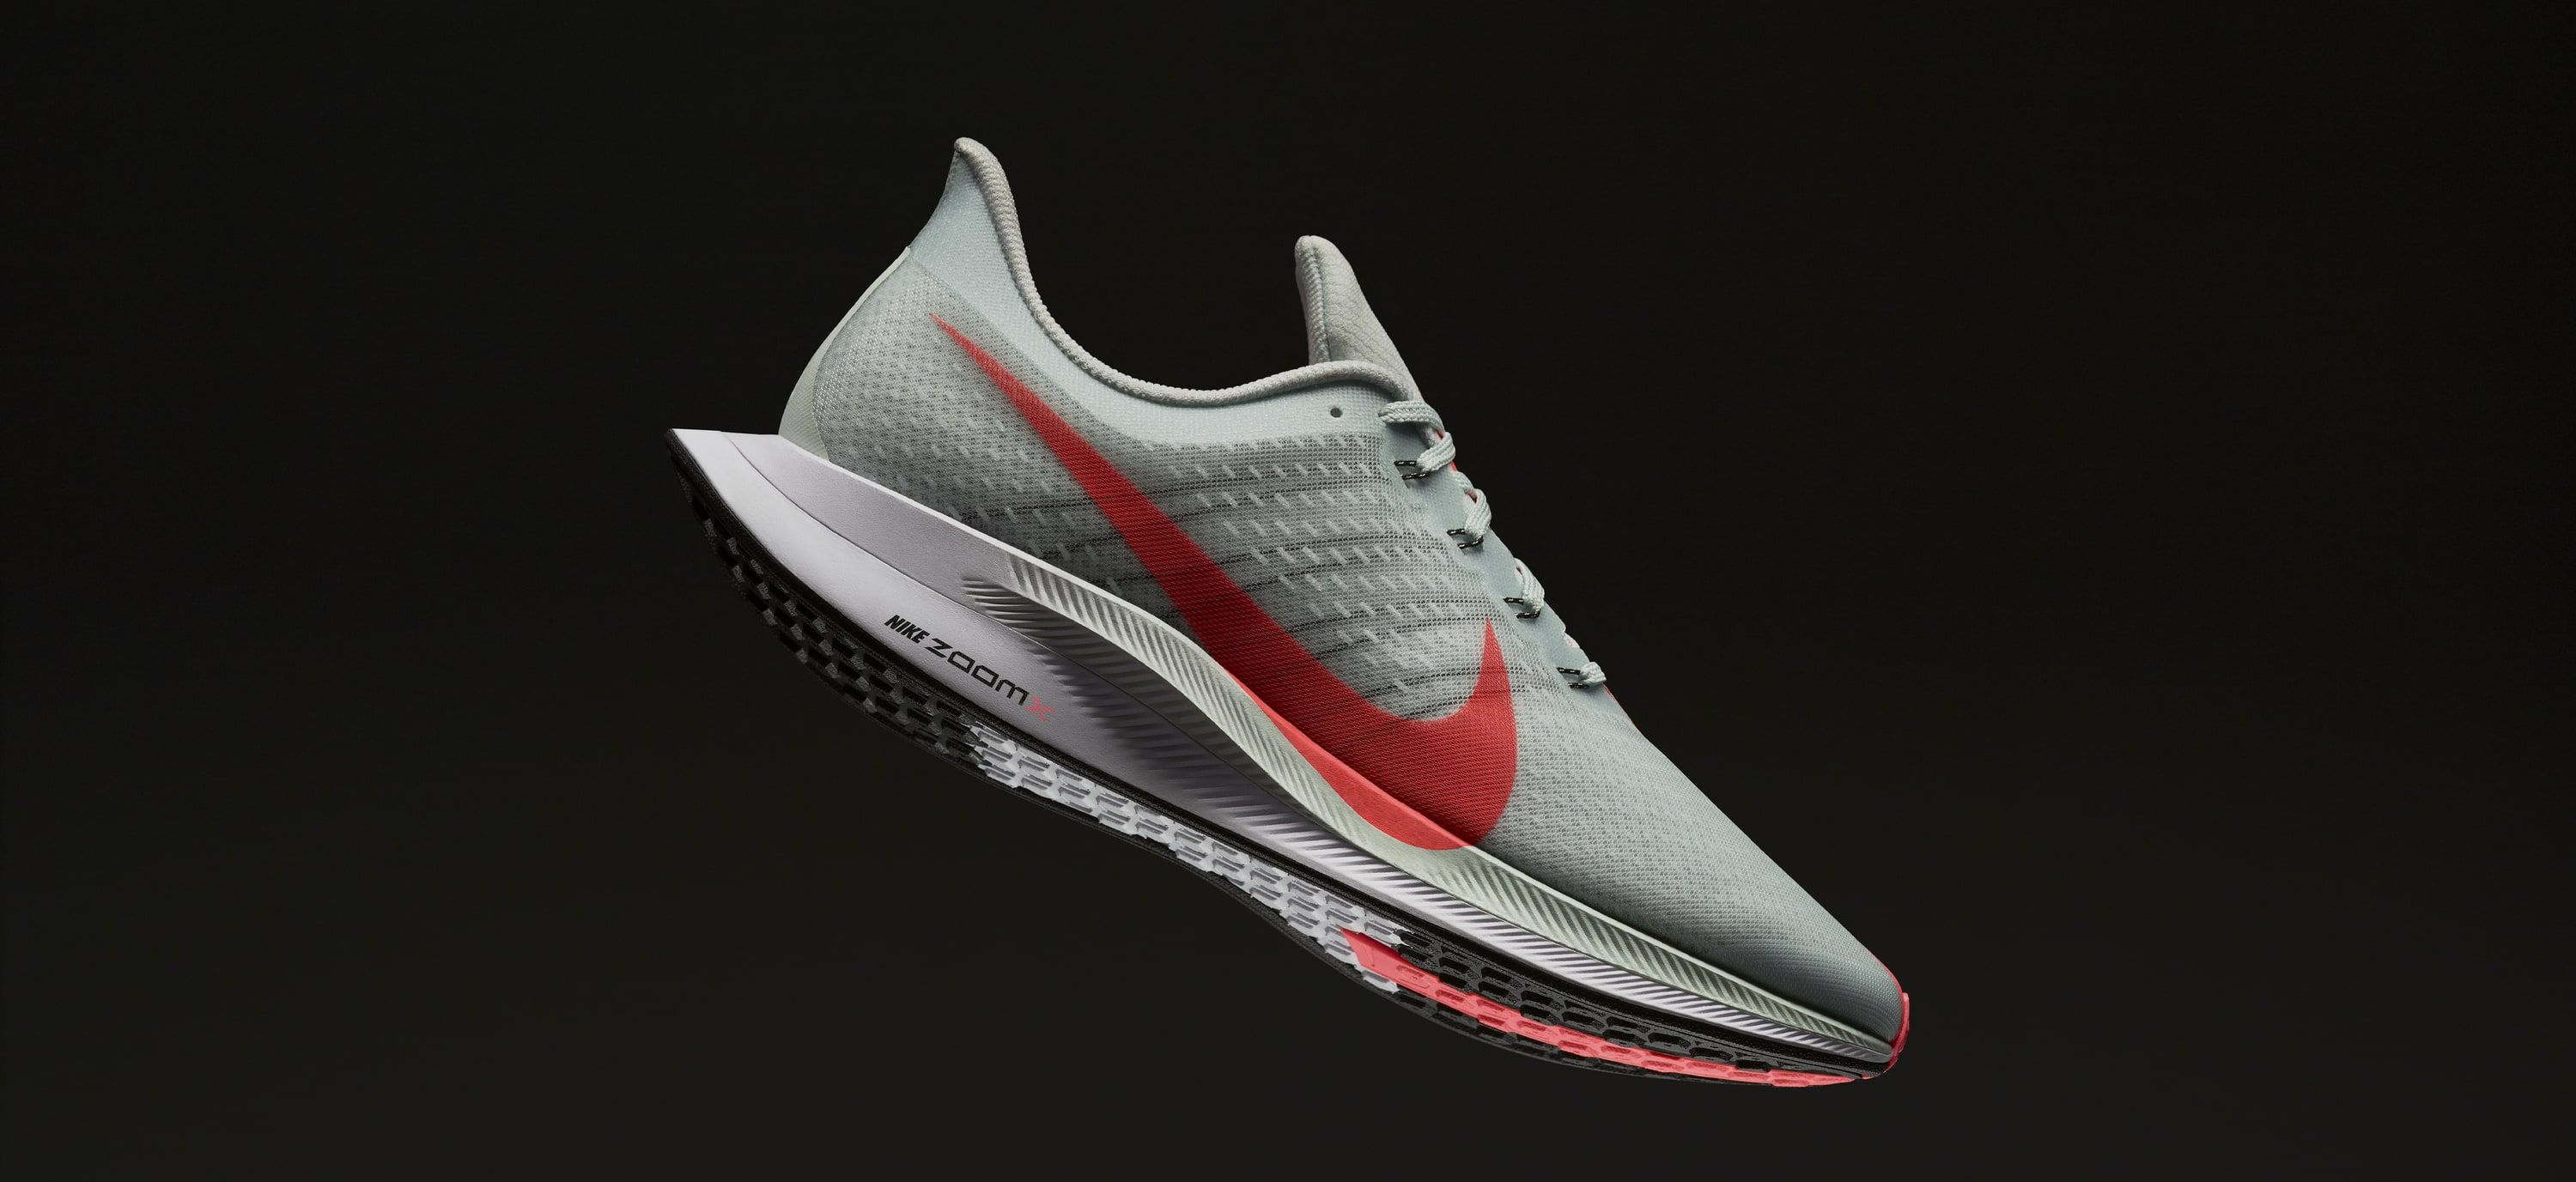 details for no sale tax low price NIKE-Zoom Pegasus Turbo | Nike zoom pegasus, Nike pegasus, Nike zoom